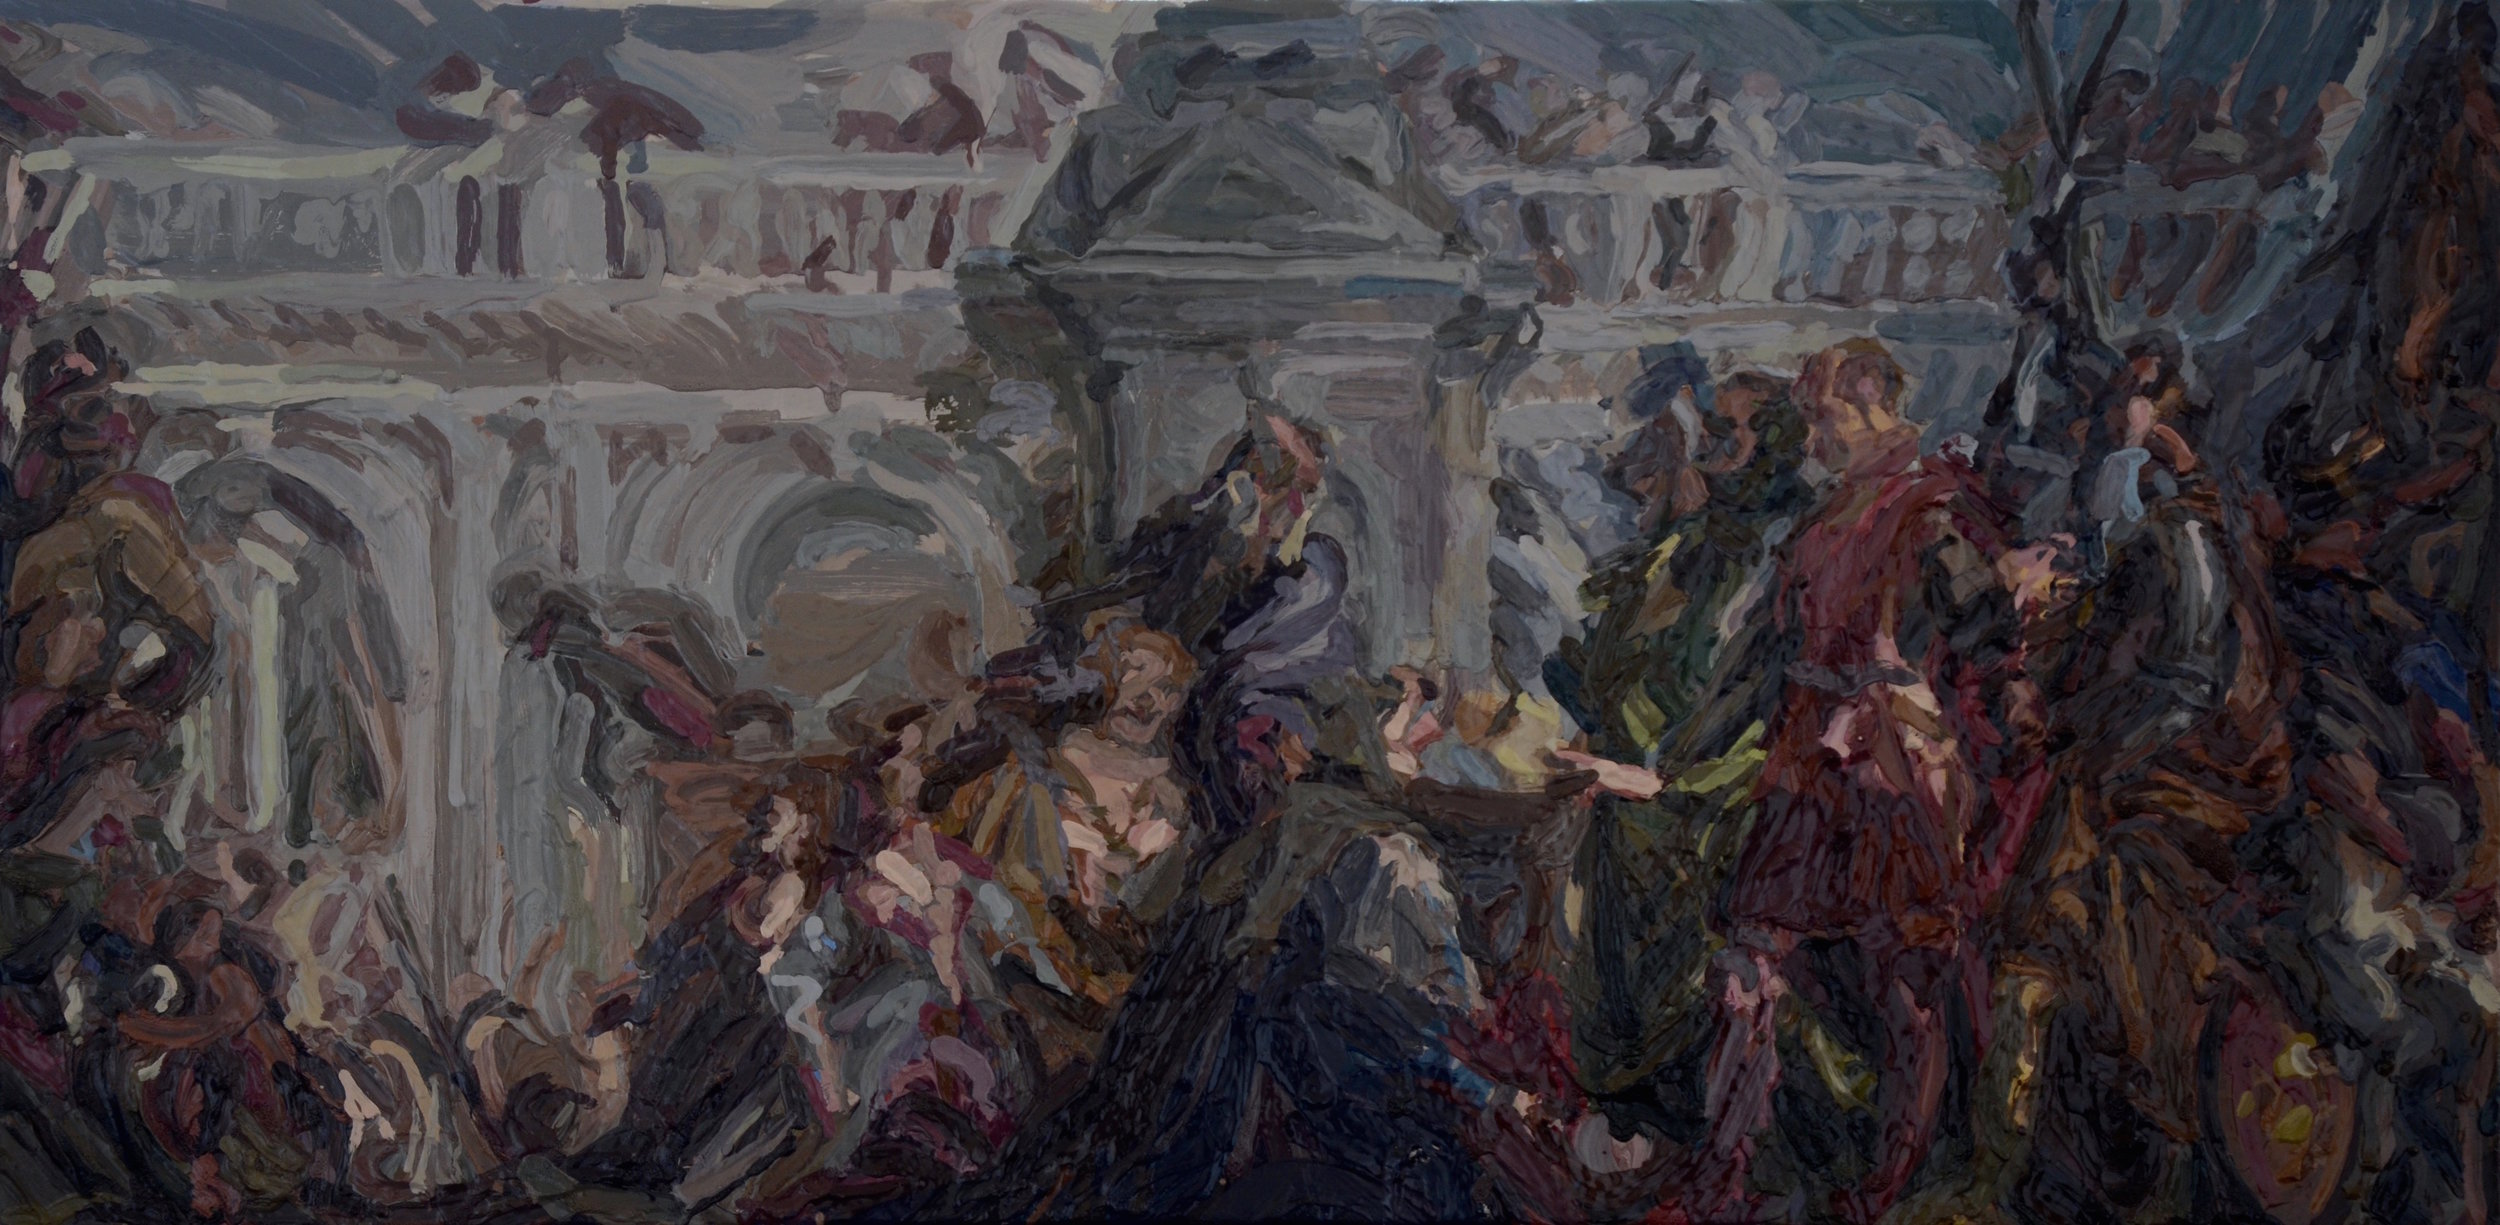 Charlie Schaffer, After Veronese, oil on canvas, 35 x 70 cm,  http://www.charlieschaffer.com